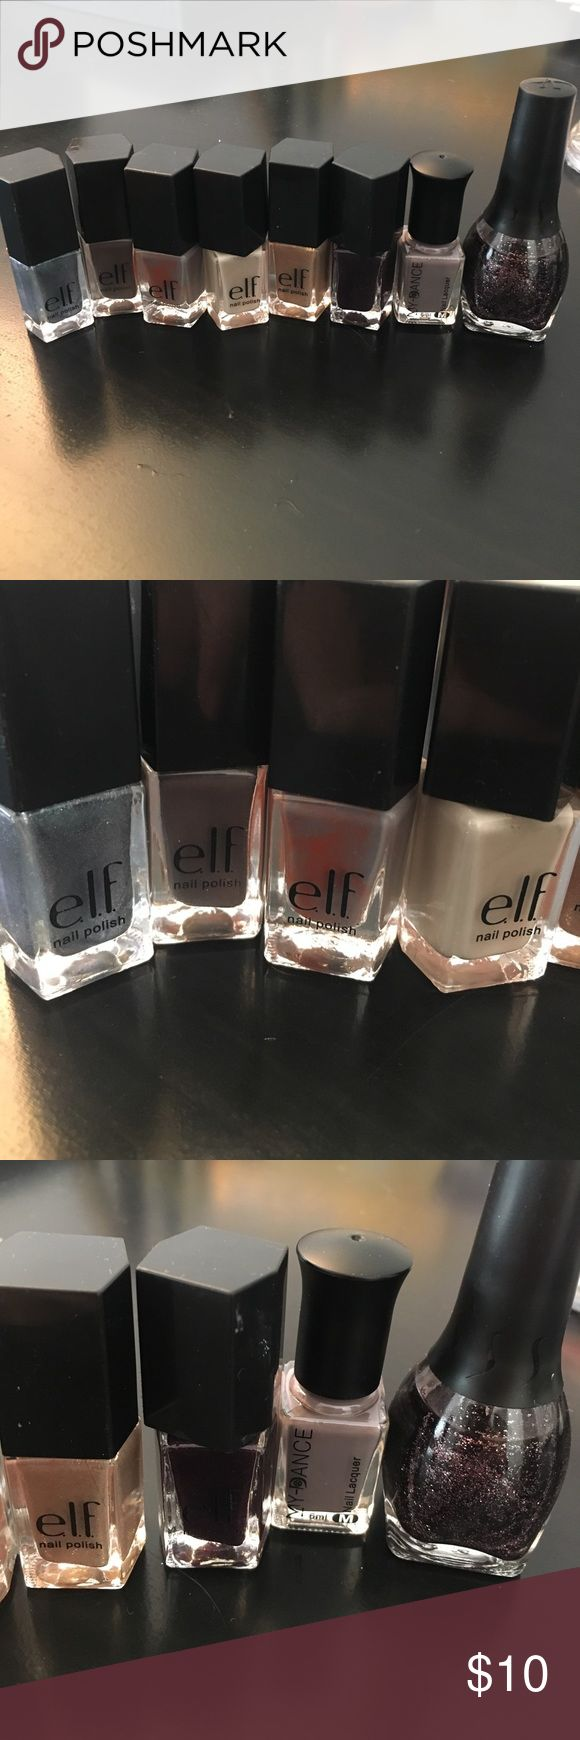 Elf nail polish Only tried on for color! 6 small e.l.f. nail polish and two other ones both new! One of my other nail polishes leaked so got some on a couple of the elf bottles. Price is for all 8. e.l.f. Makeup